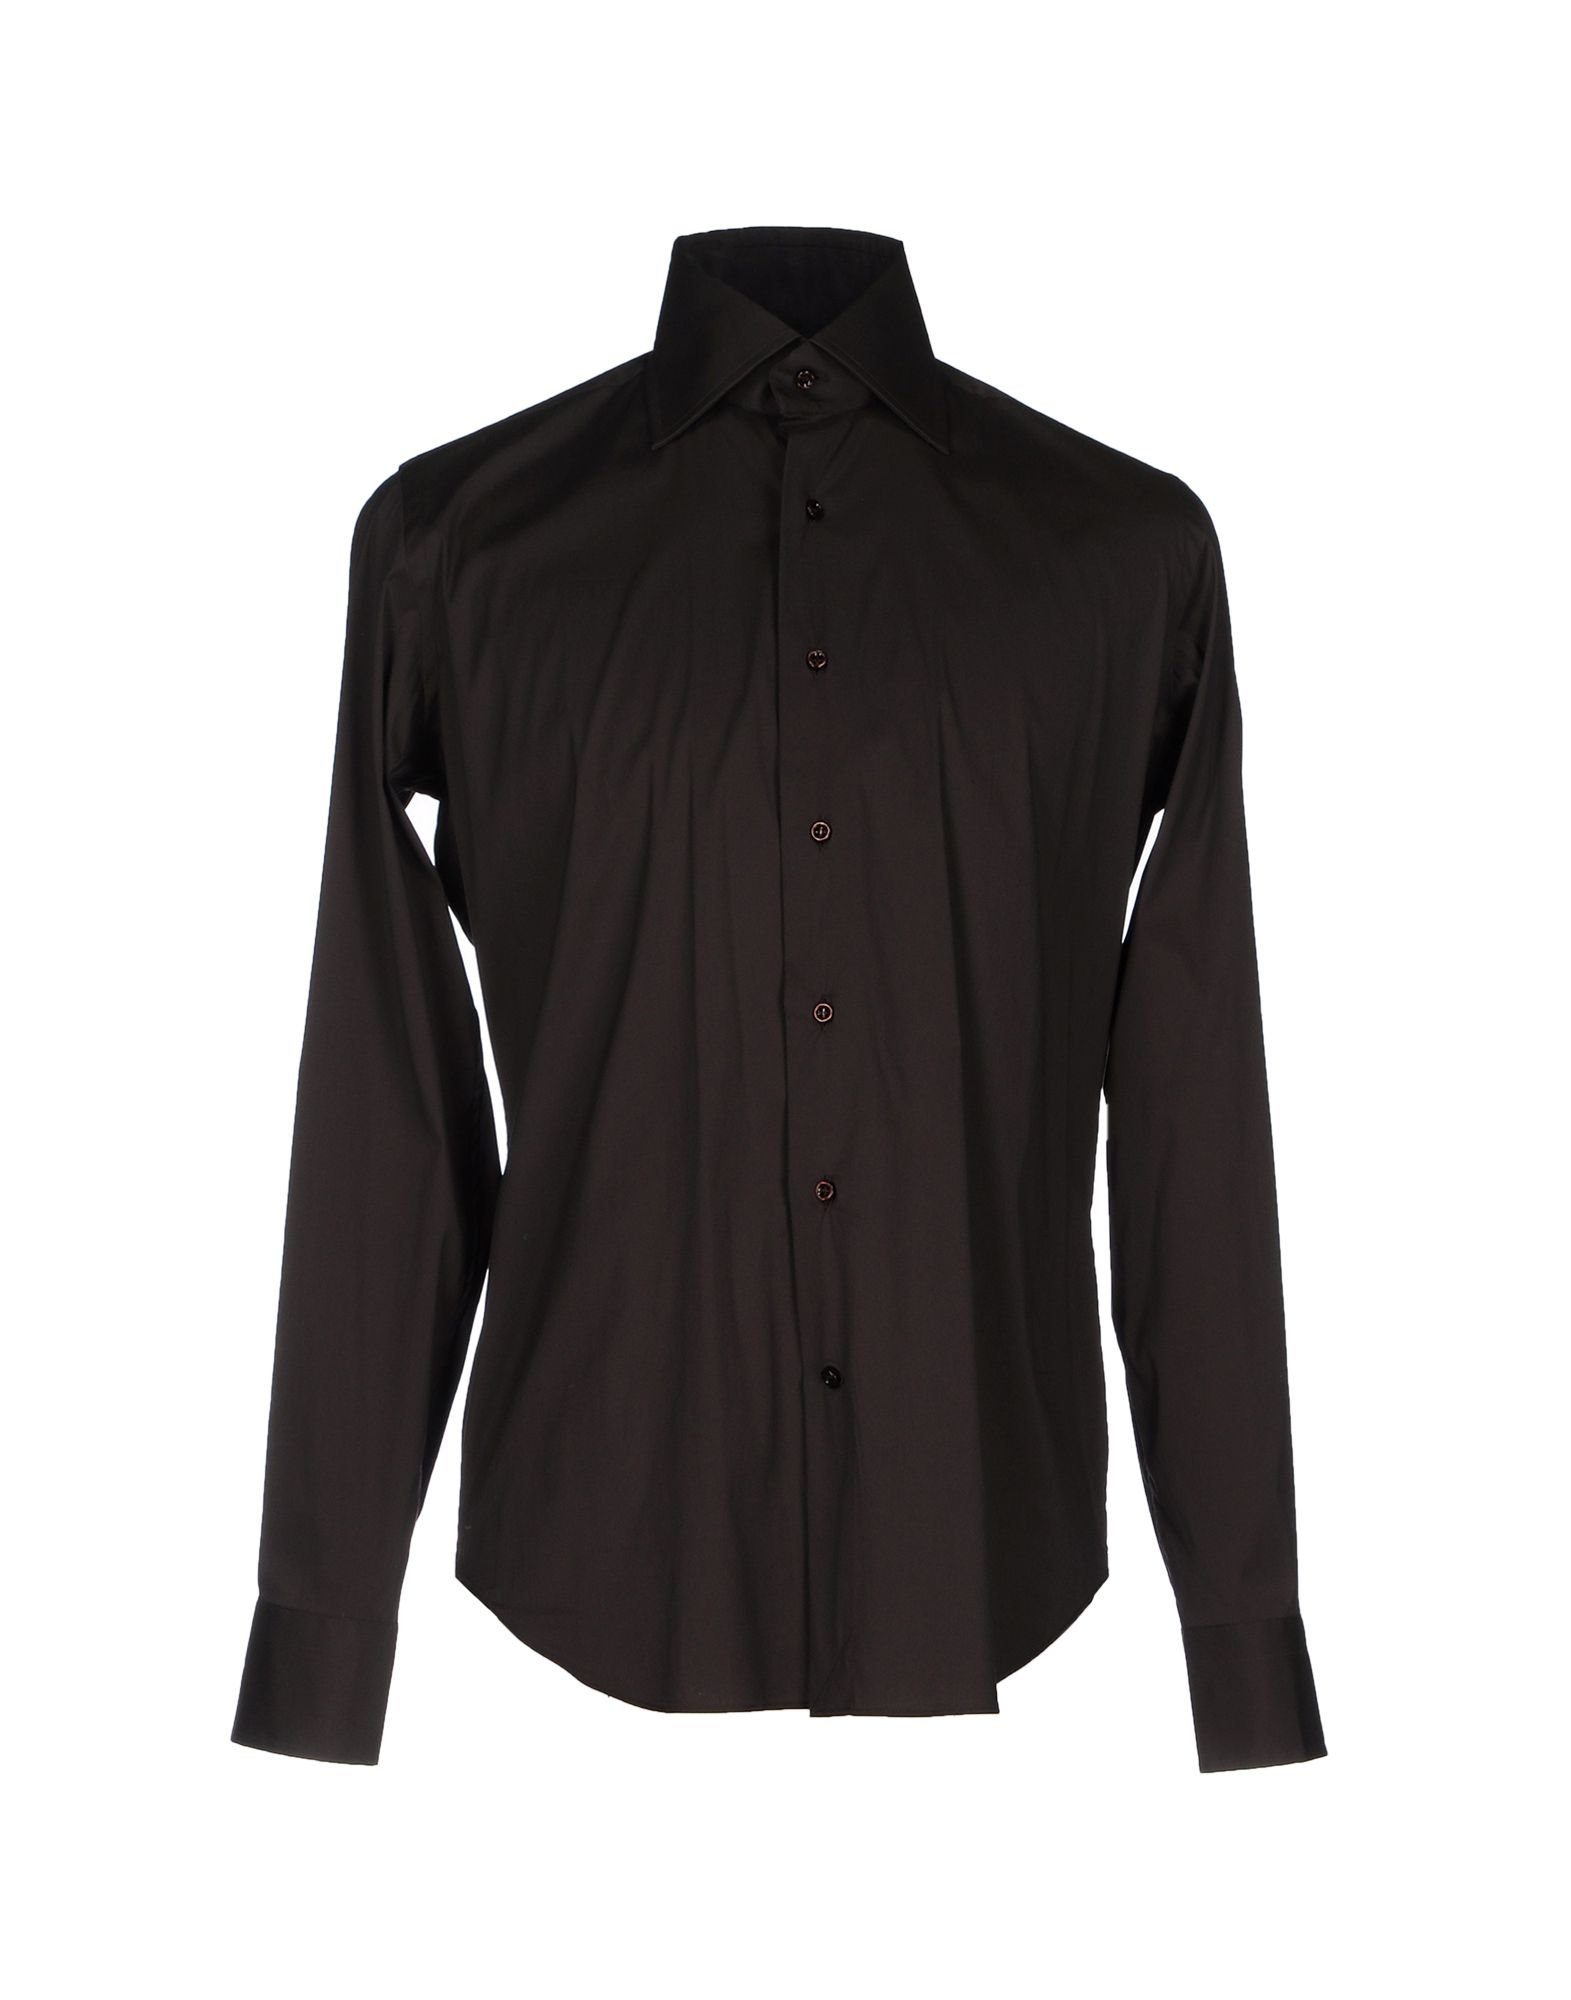 LEXINGTON Solid Color Shirt in Dark Brown